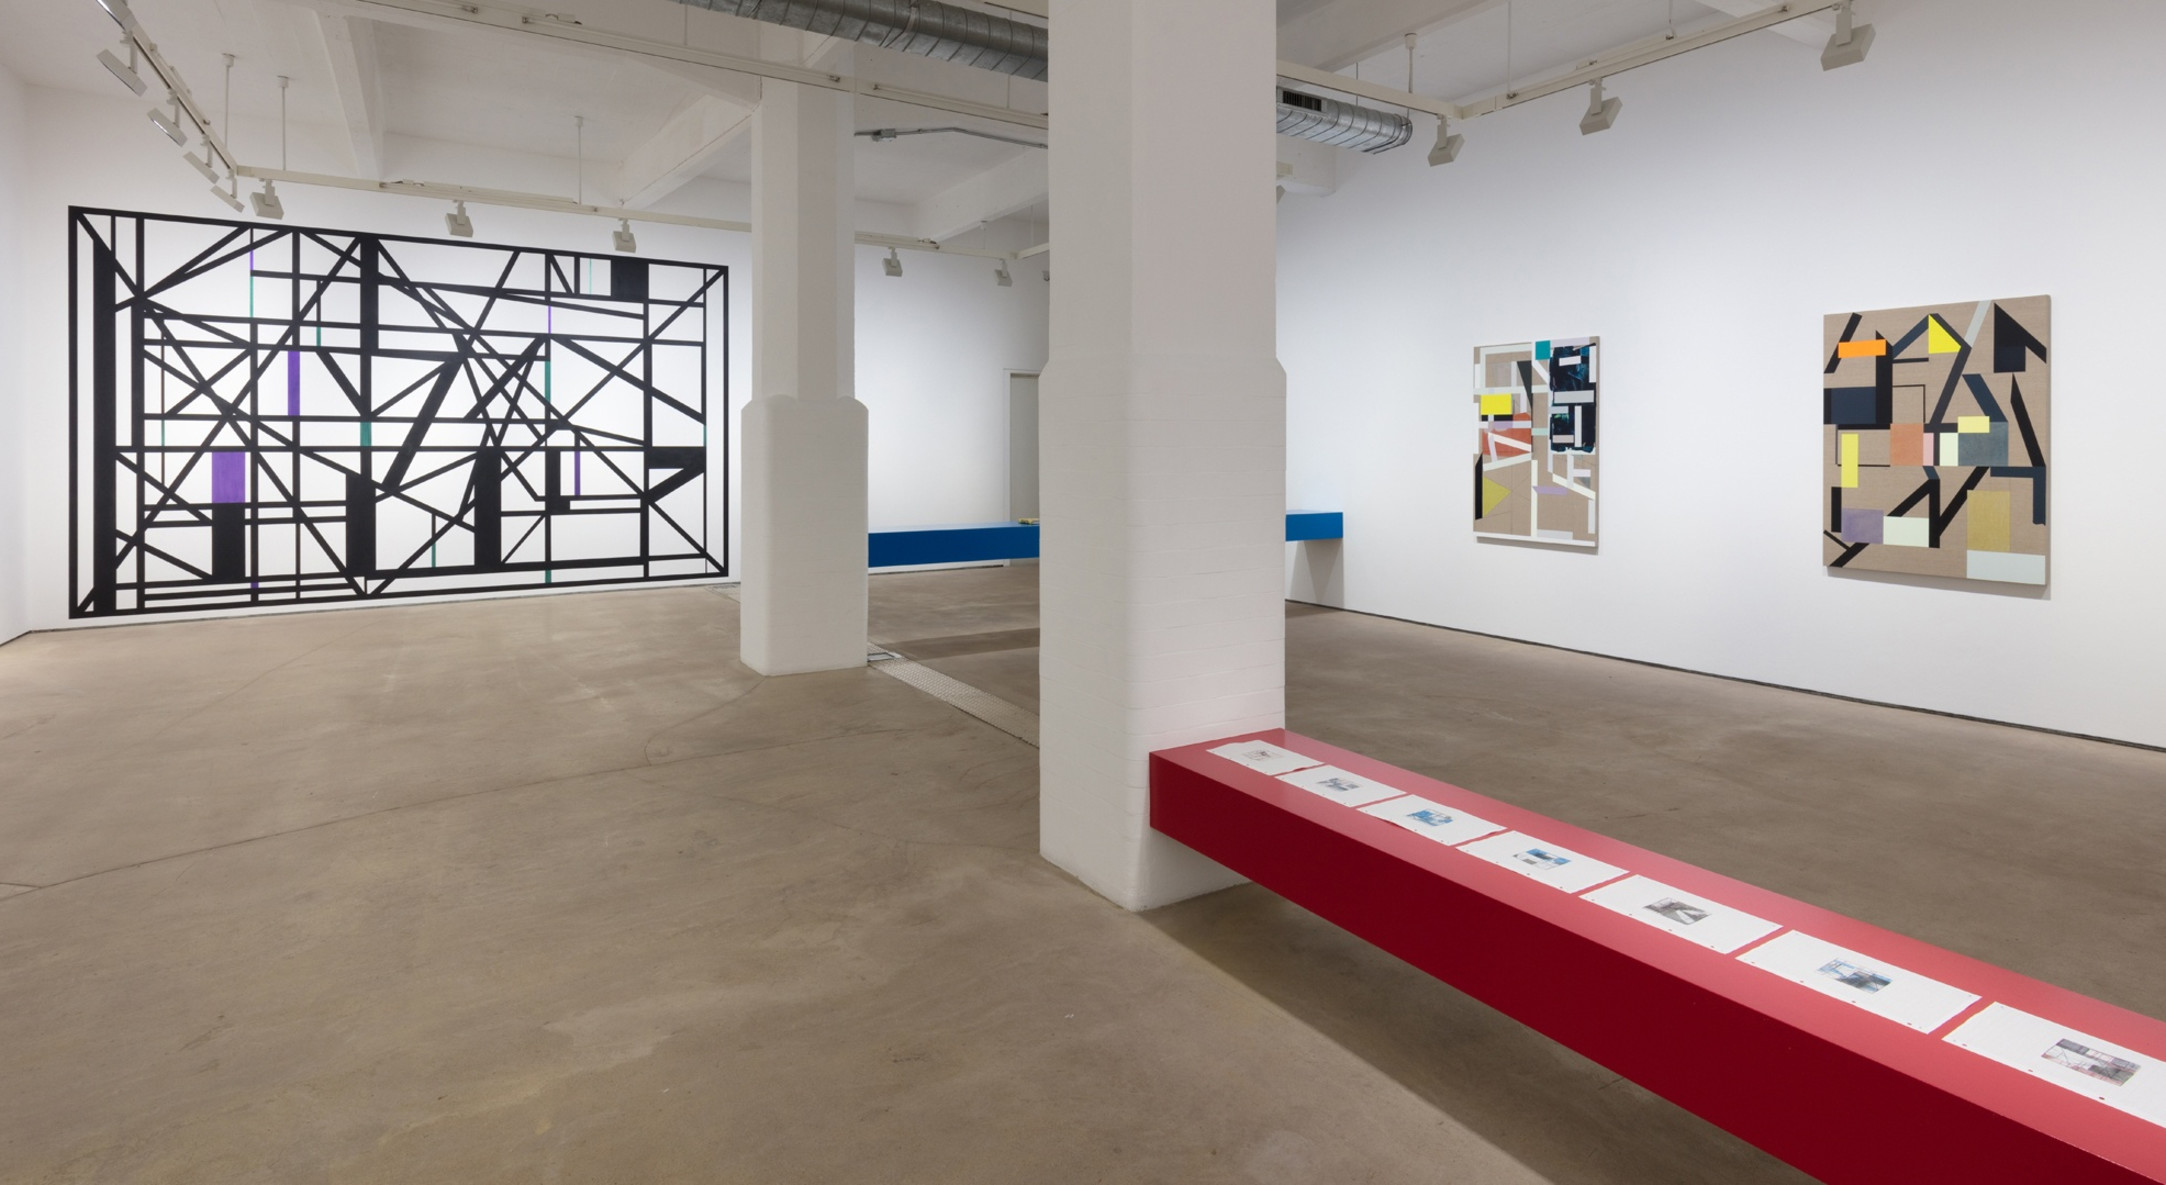 Installation view of Andrew Bick Concrete Disco Systems at Hales Gallery London, 2019